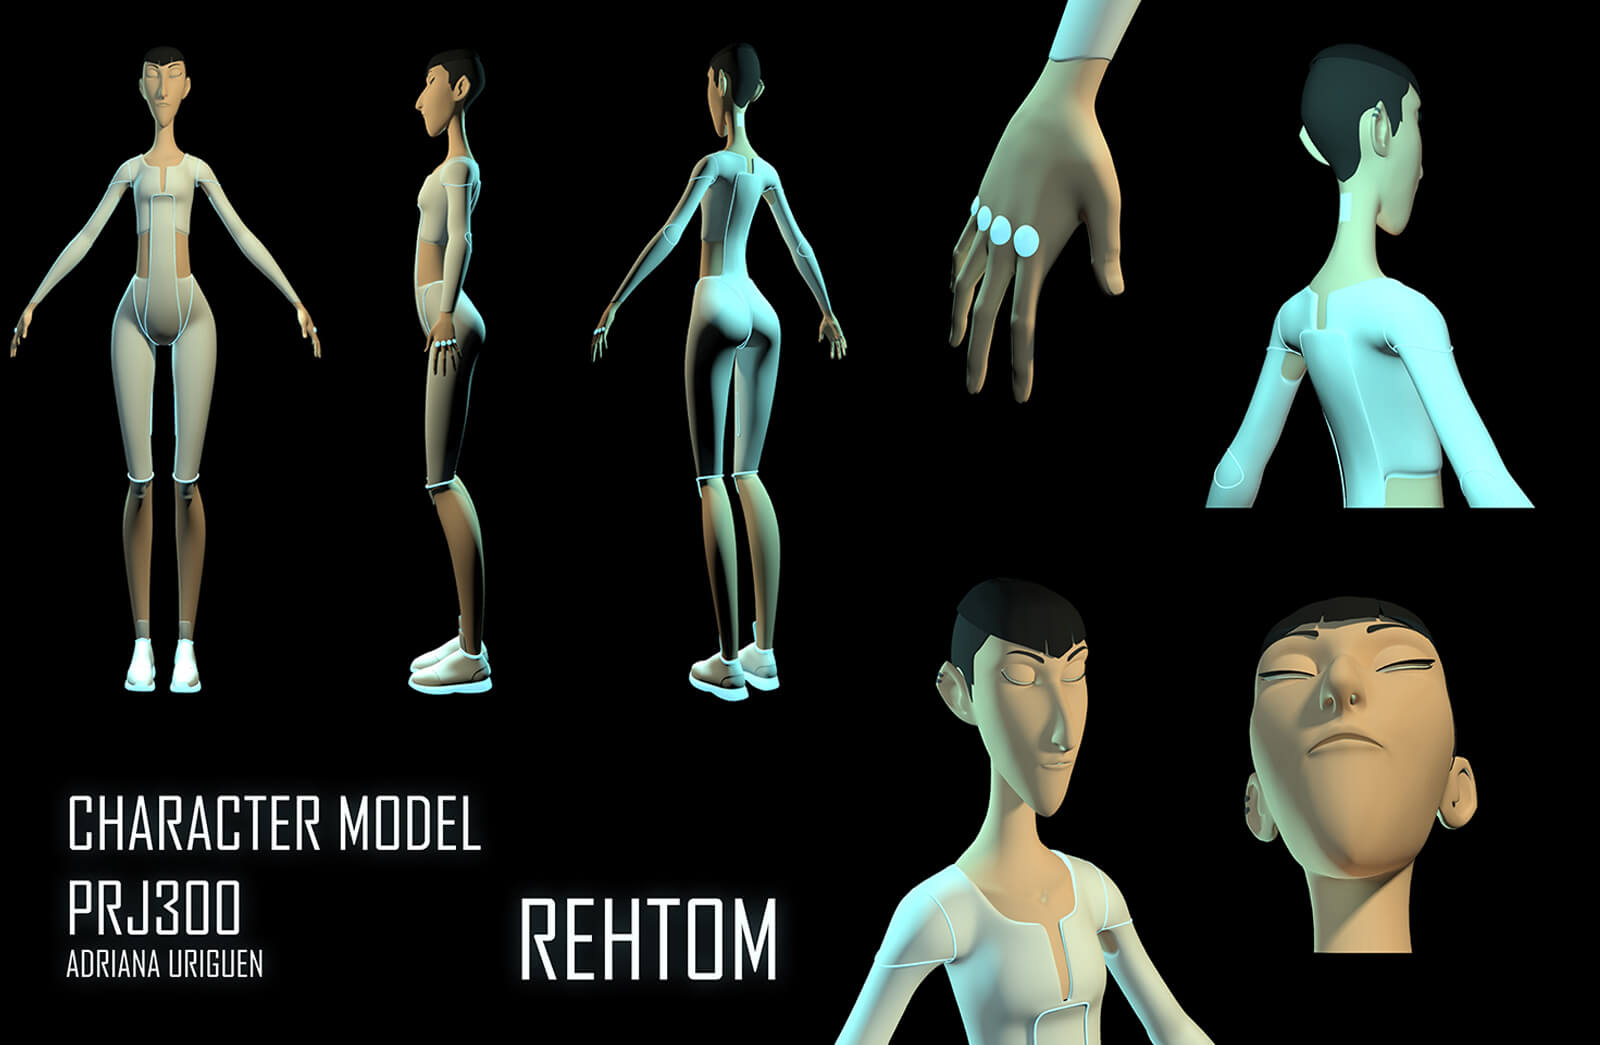 3D character model of a tall, thin woman standing in futuristic white clothing from different angles